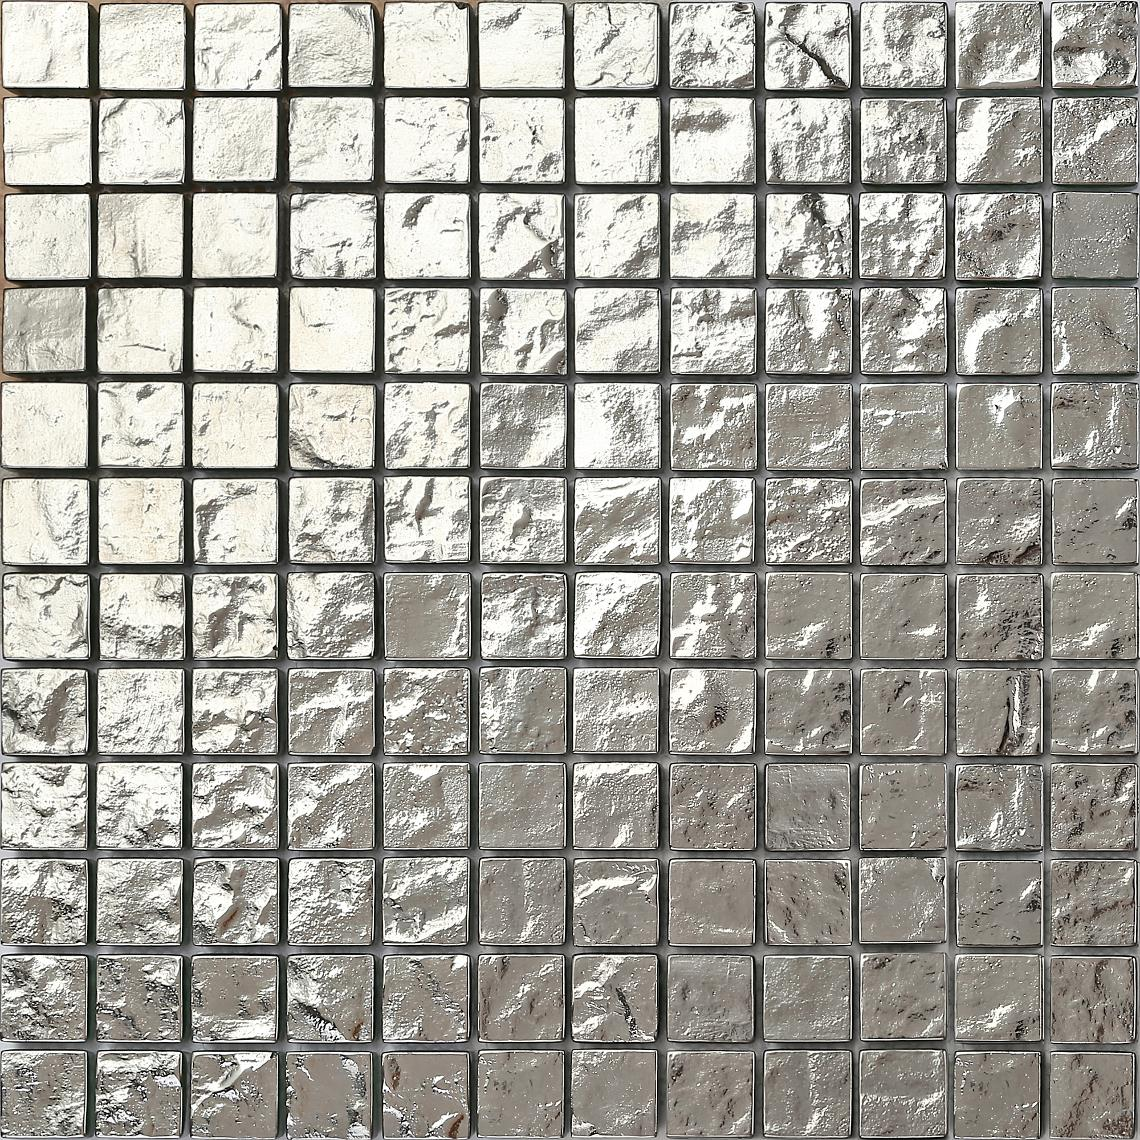 Silver Glass Mosaic Wall Tiles Textured Bathroom Shower